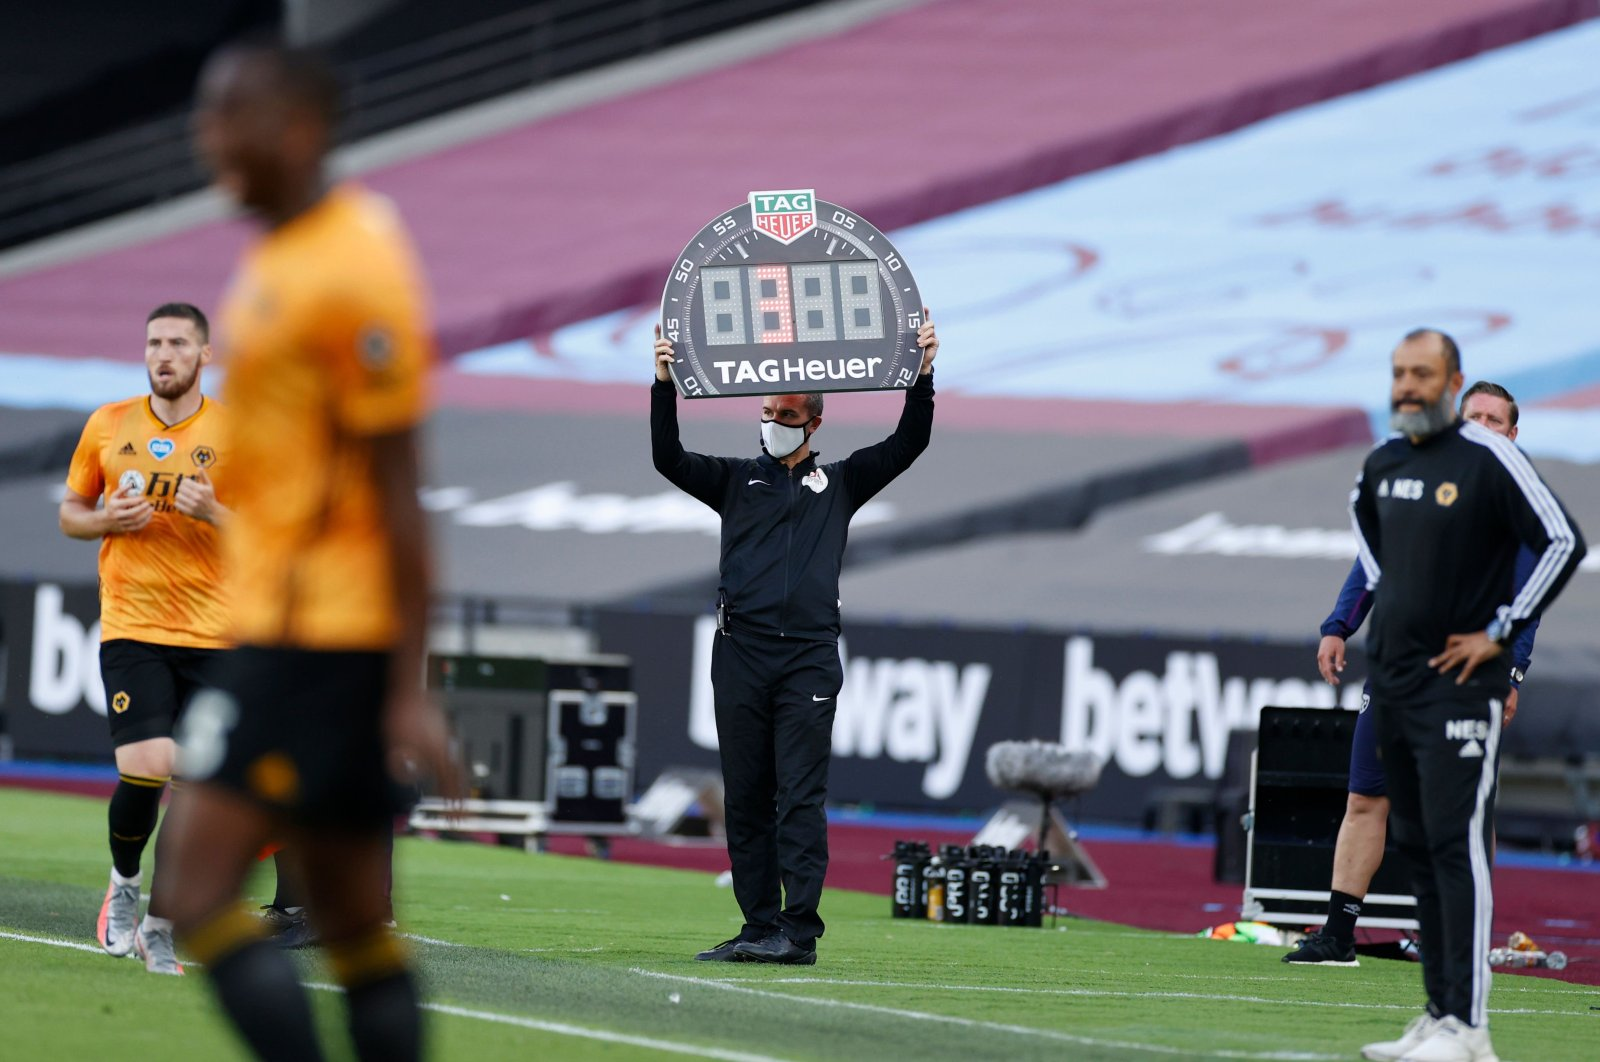 Wolverhampton Wanderers coach Nuno Espirito Santo (R) watches a substitution of players during a match against West Ham, London, June 20, 2020. (AFP Photo)